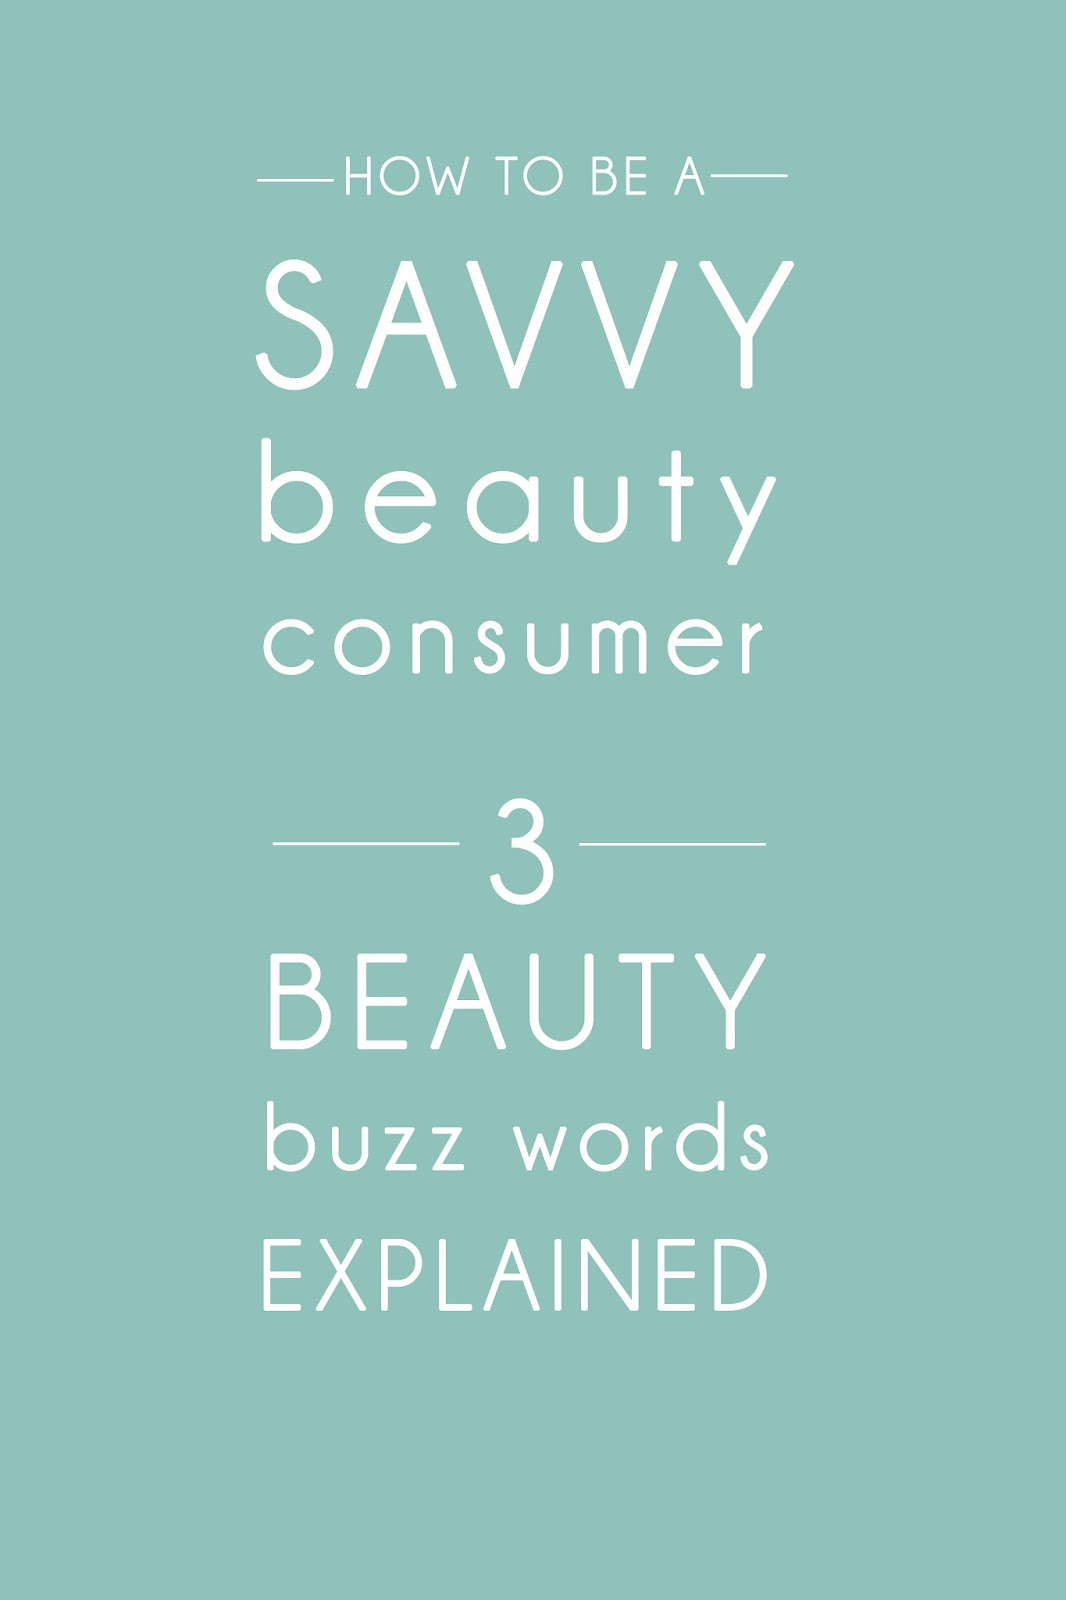 How to be a Savvy Beauty Consumer - 3 Beauty Buzz Words Explained - www.beaucience.co.uk